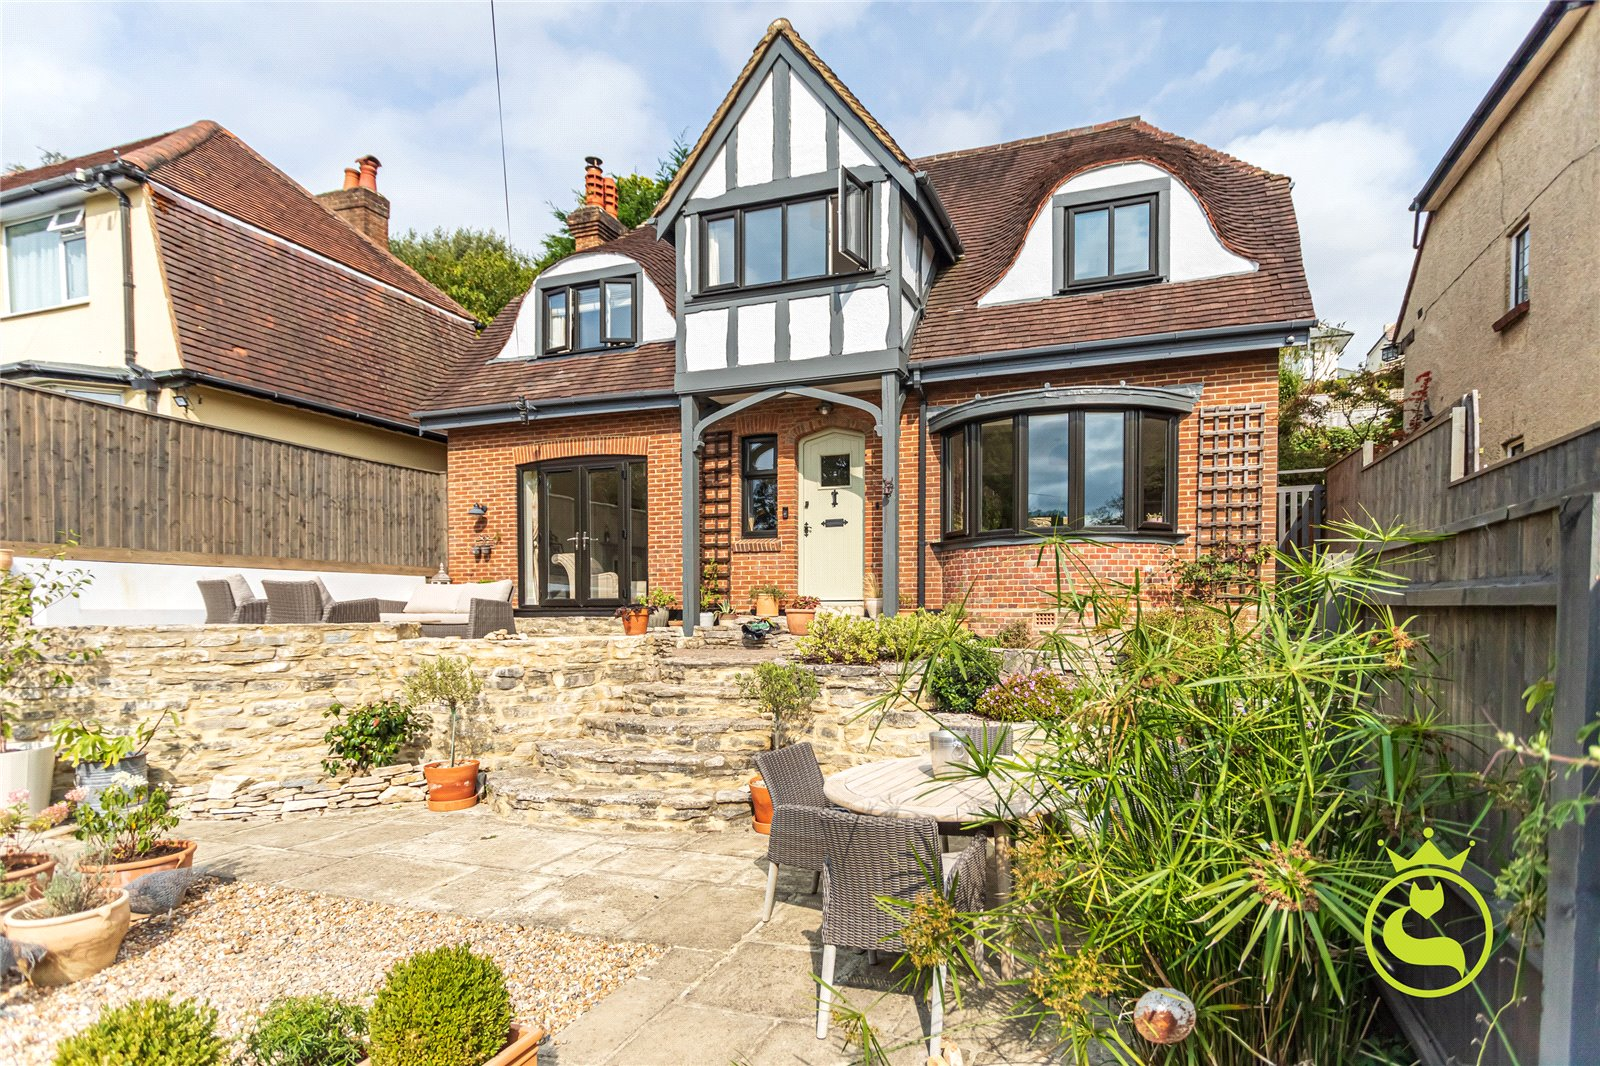 3 bed house for sale in Glen Road, Lower Parkstone  - Property Image 1